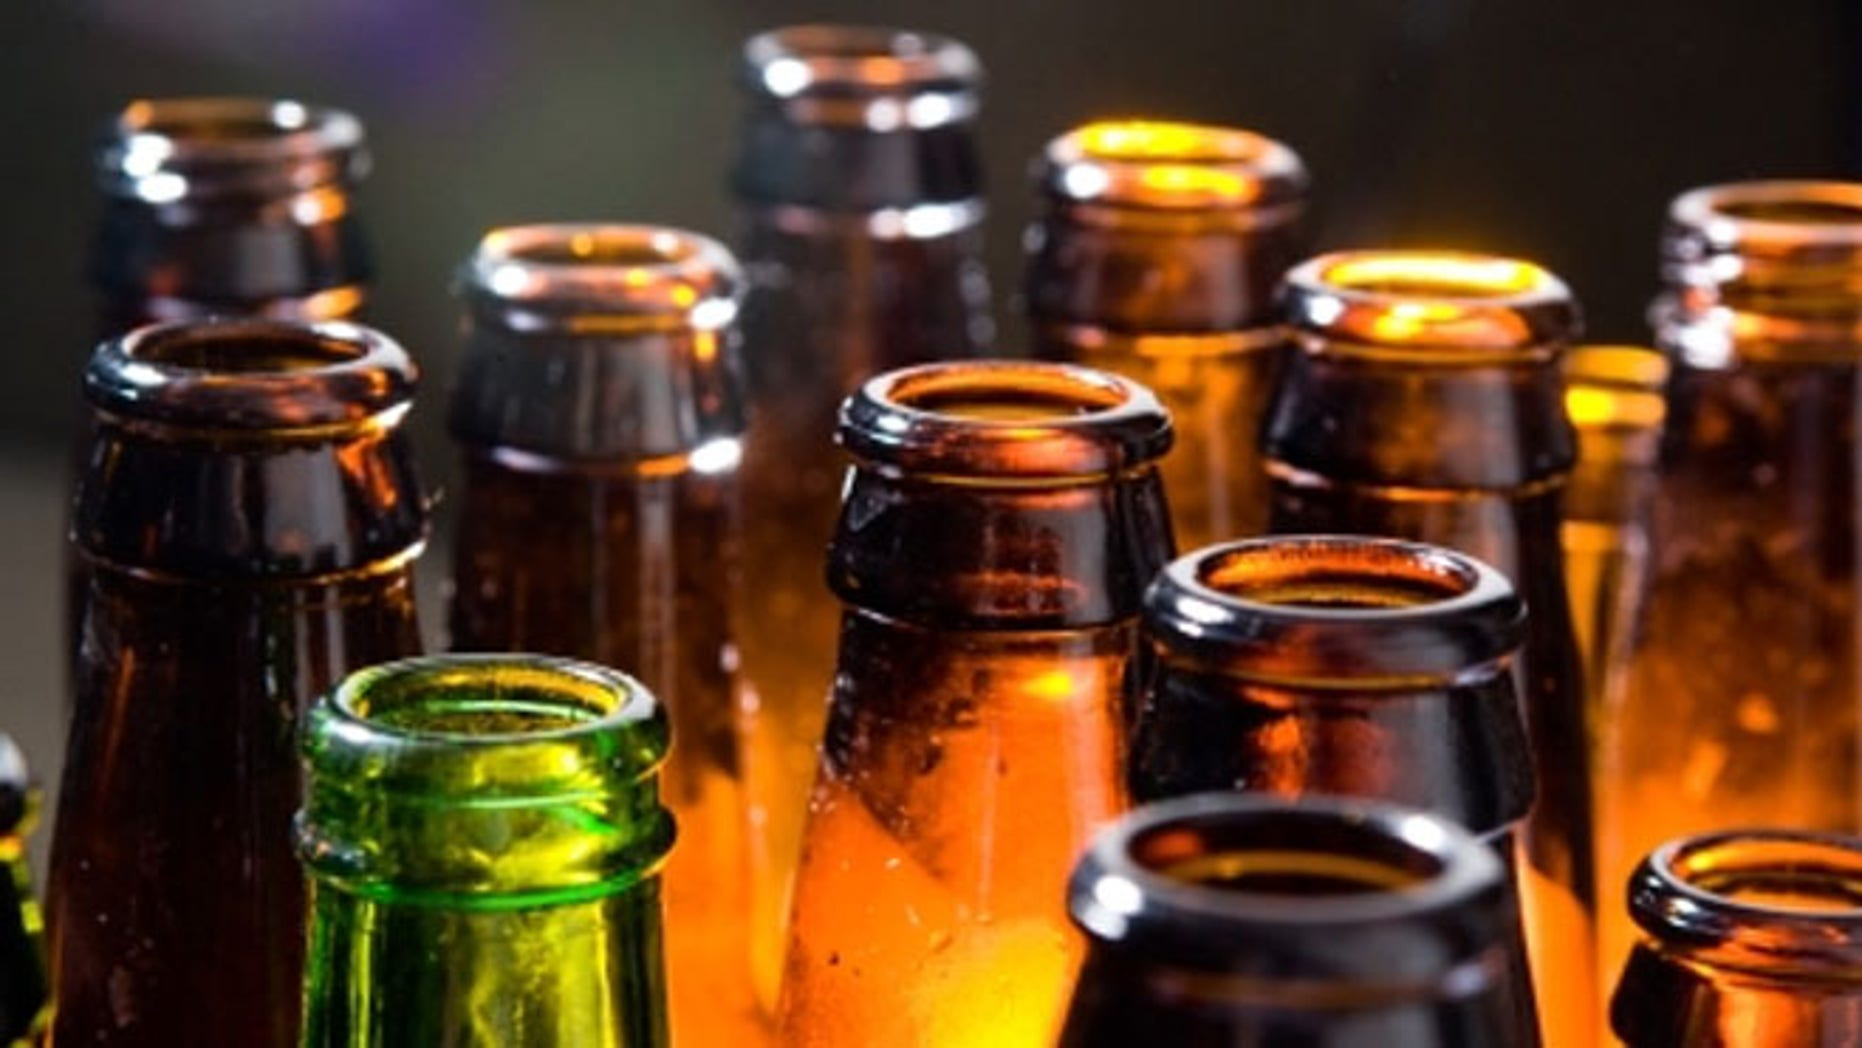 Forget the wine.  The wide range of interesting beer offerings can add to any Thanksgiving table.